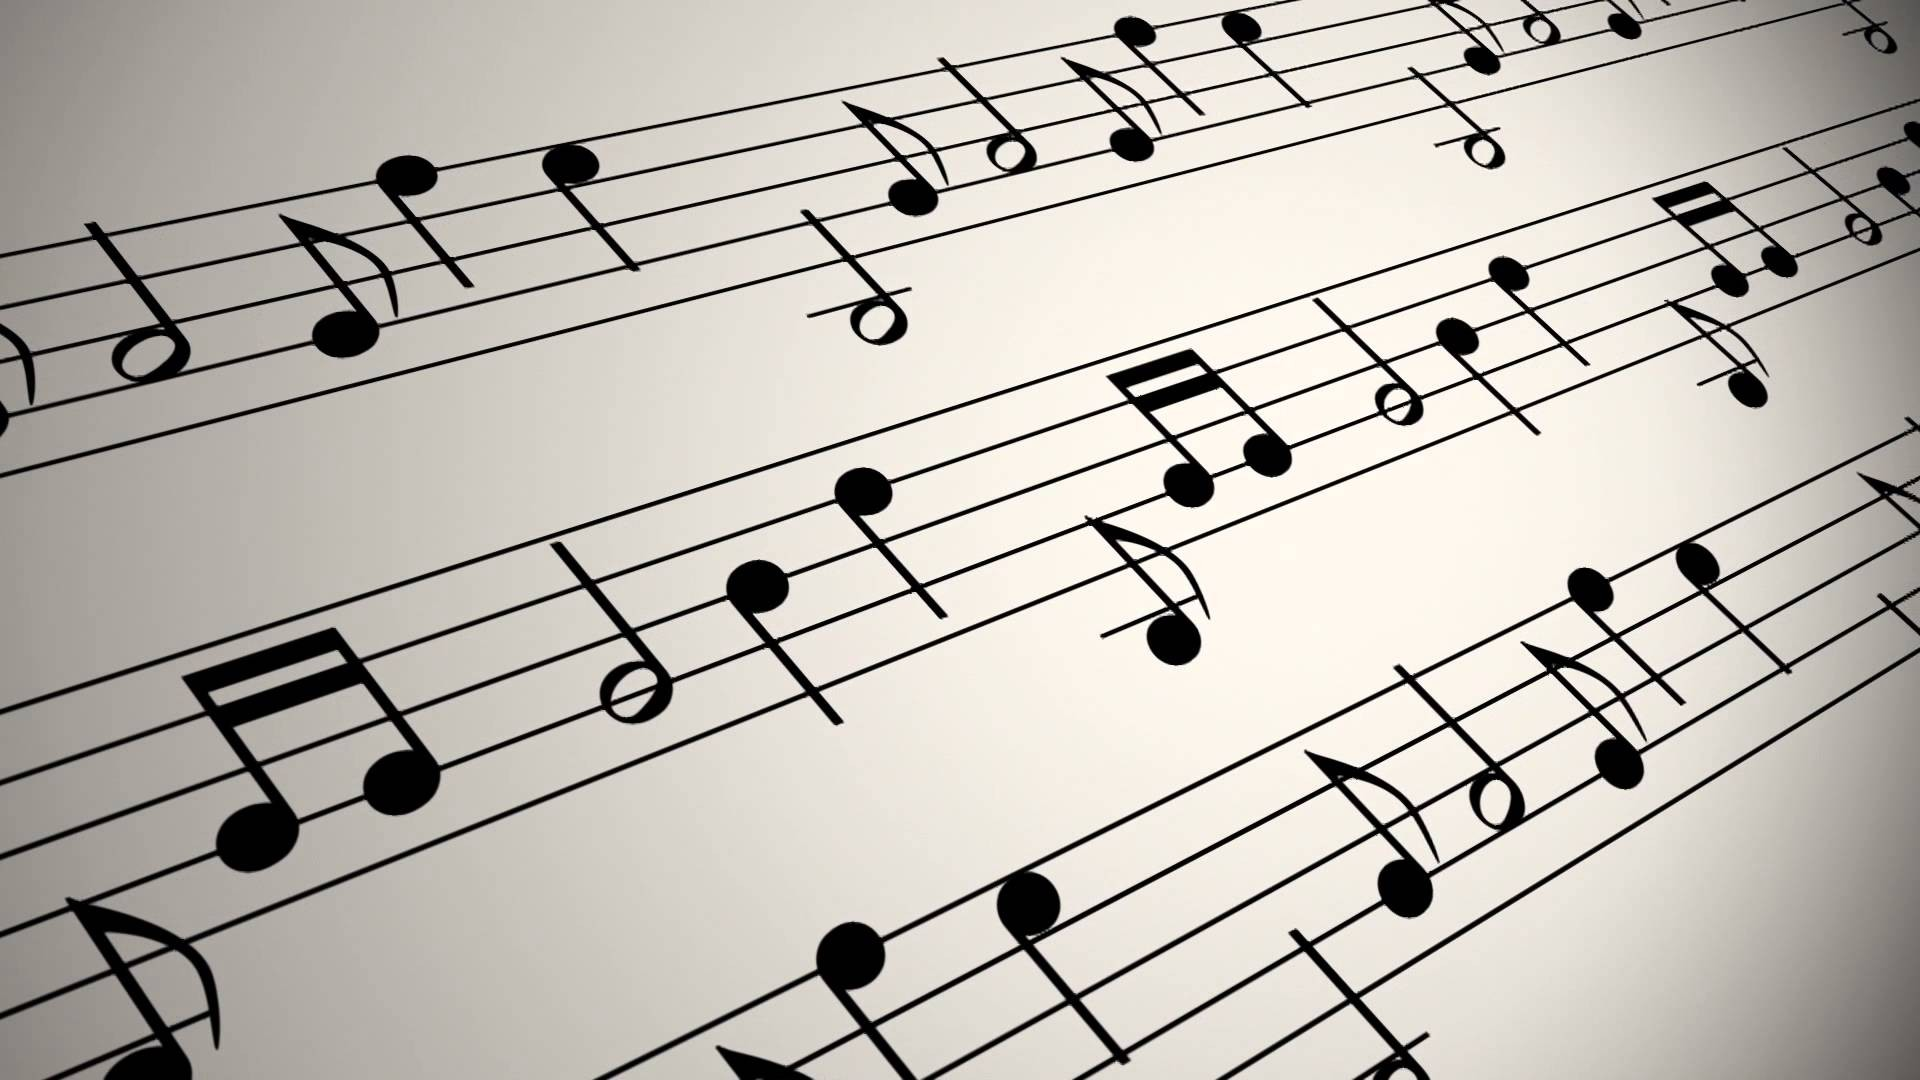 sheet music wallpaper hd 1080p - photo #17